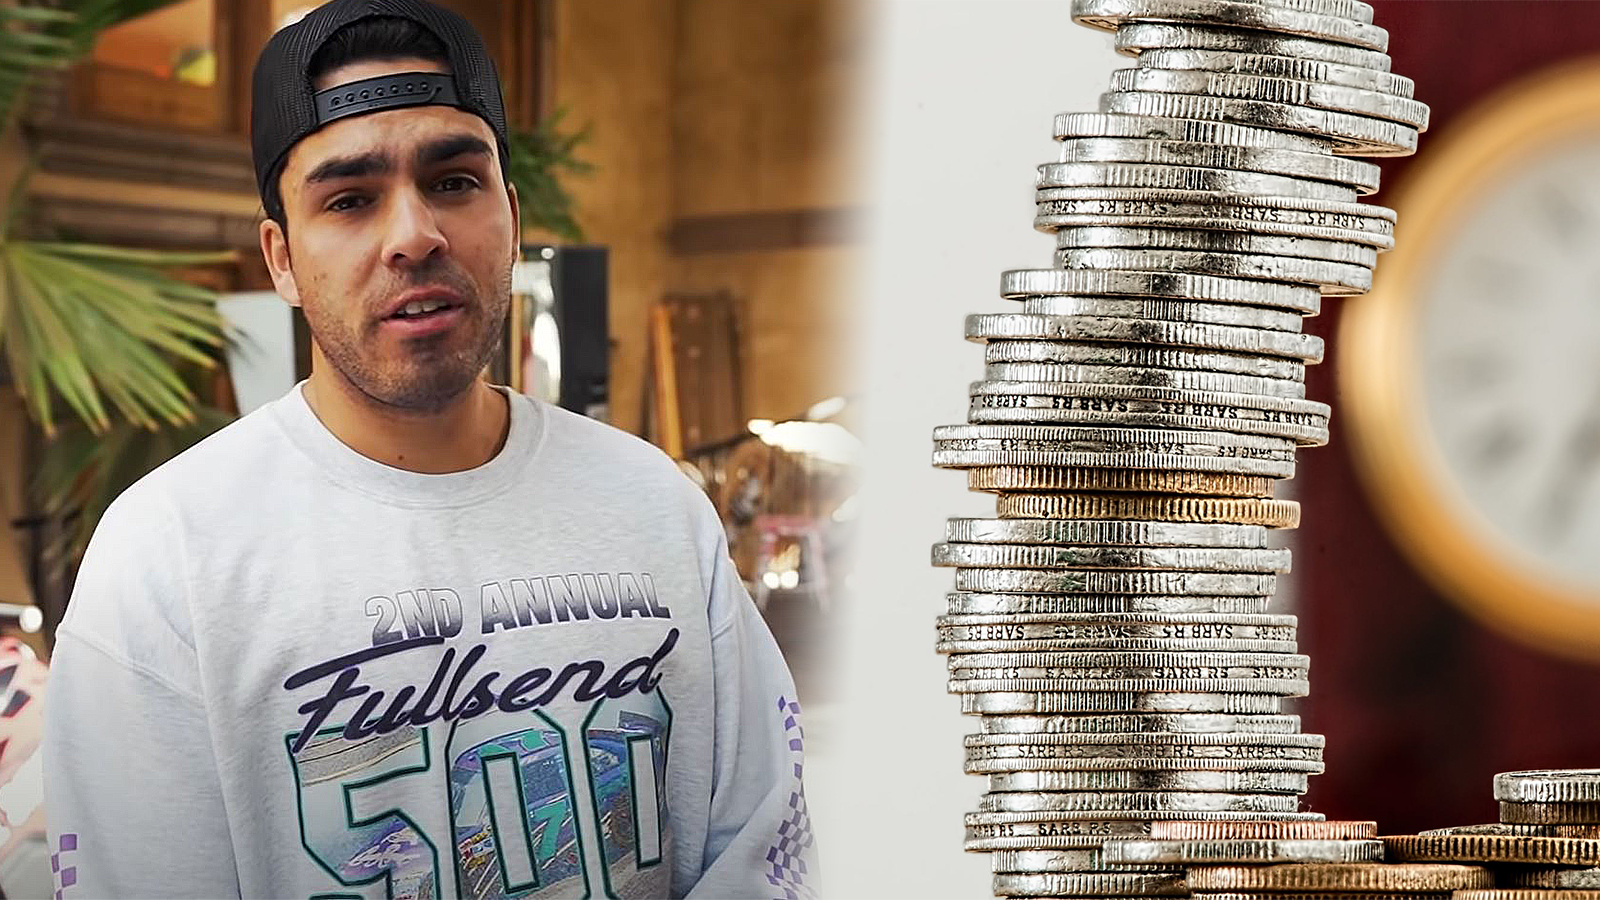 A photo of the NELK Boys' Kyle Foregard shown beside a picture of coins.